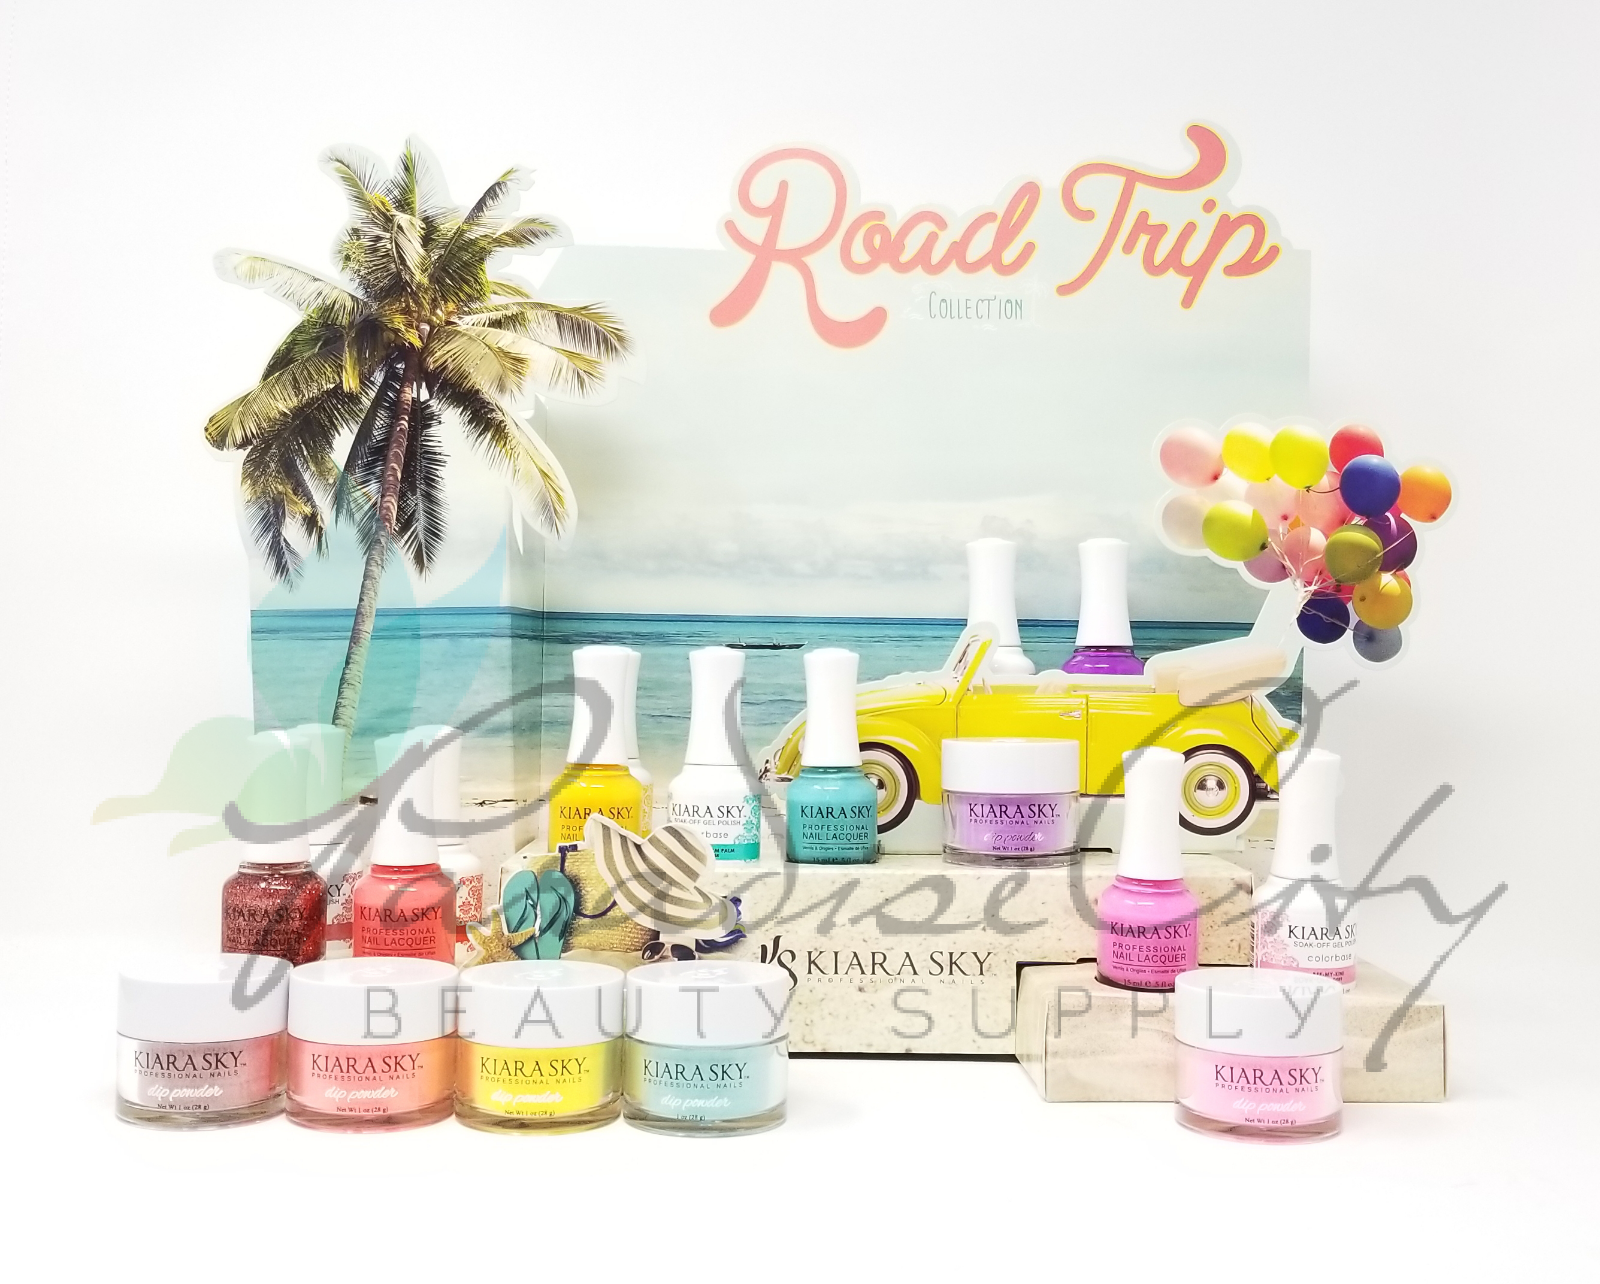 Kiara Sky Road Trip Collection